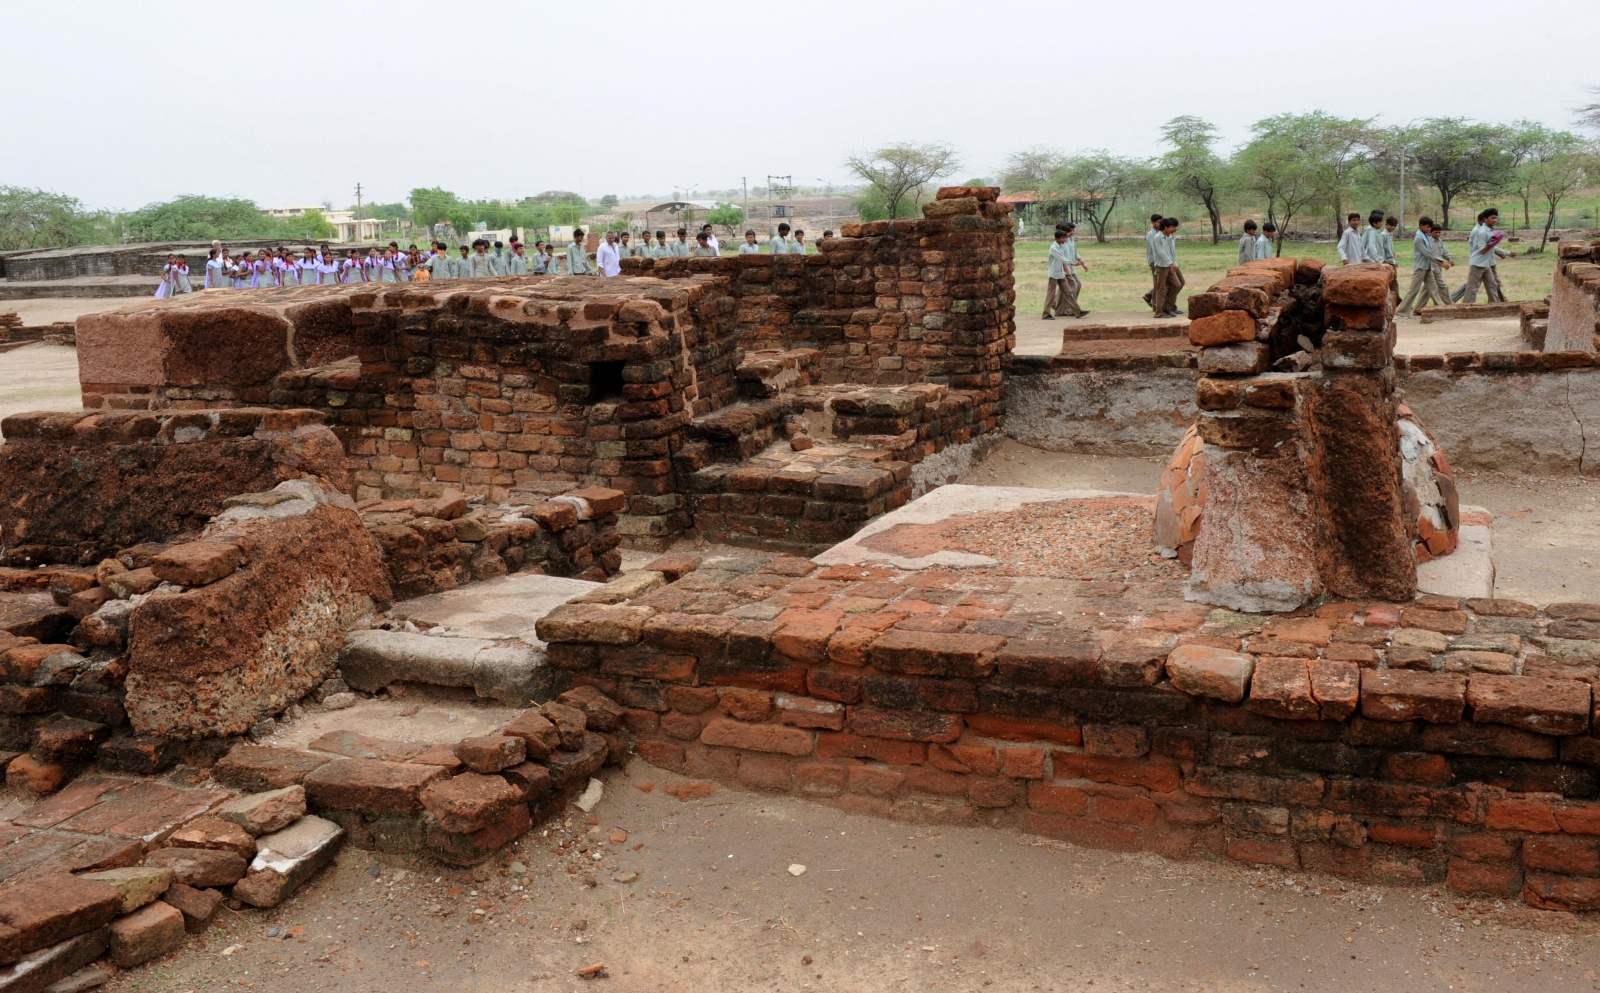 Lothal, Indus Valley Civilization